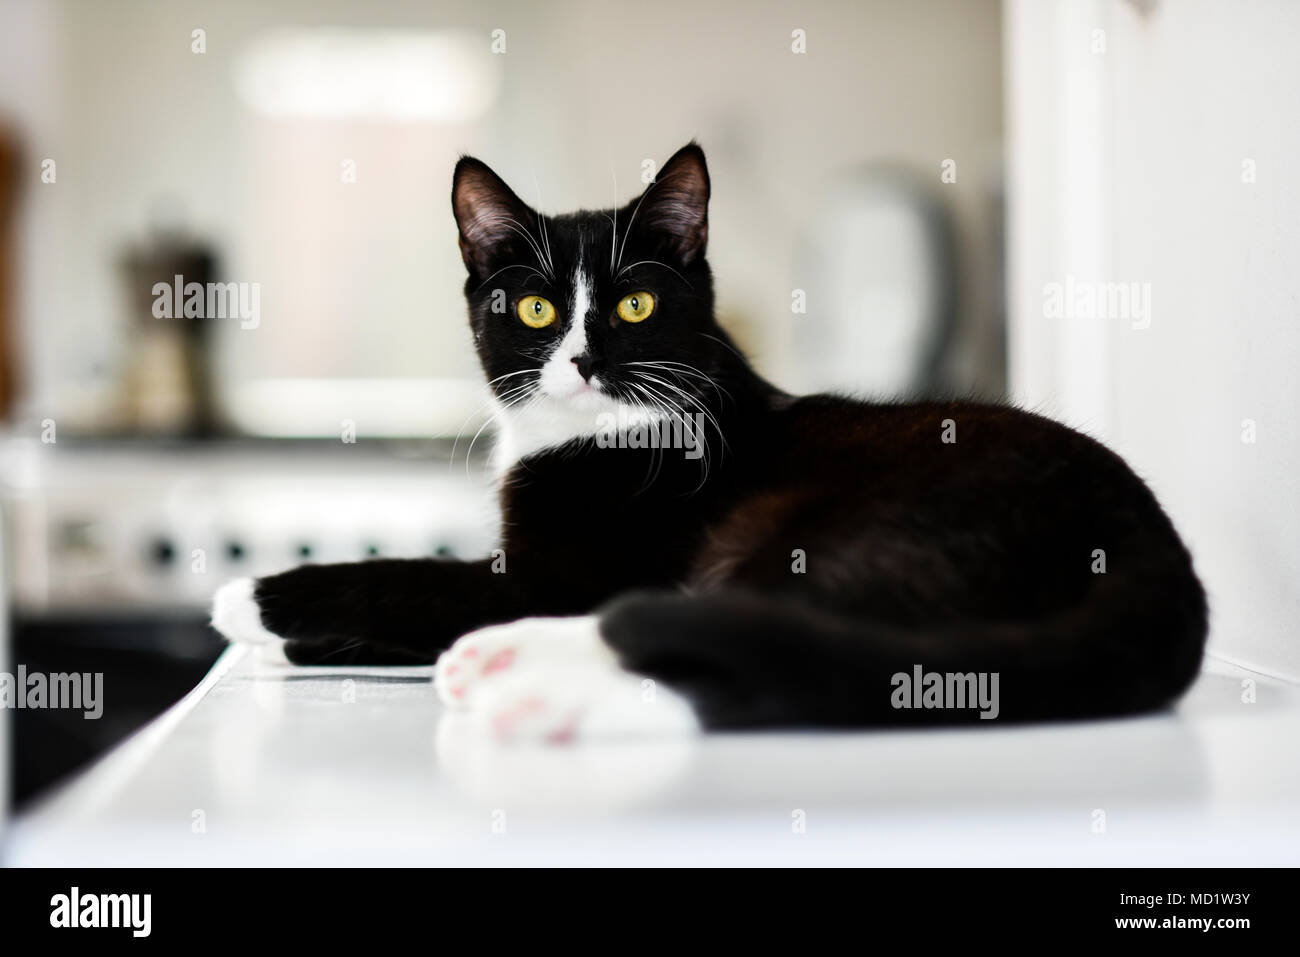 Black and white domestic cat, lying at home, relaxing and calm. - Stock Image